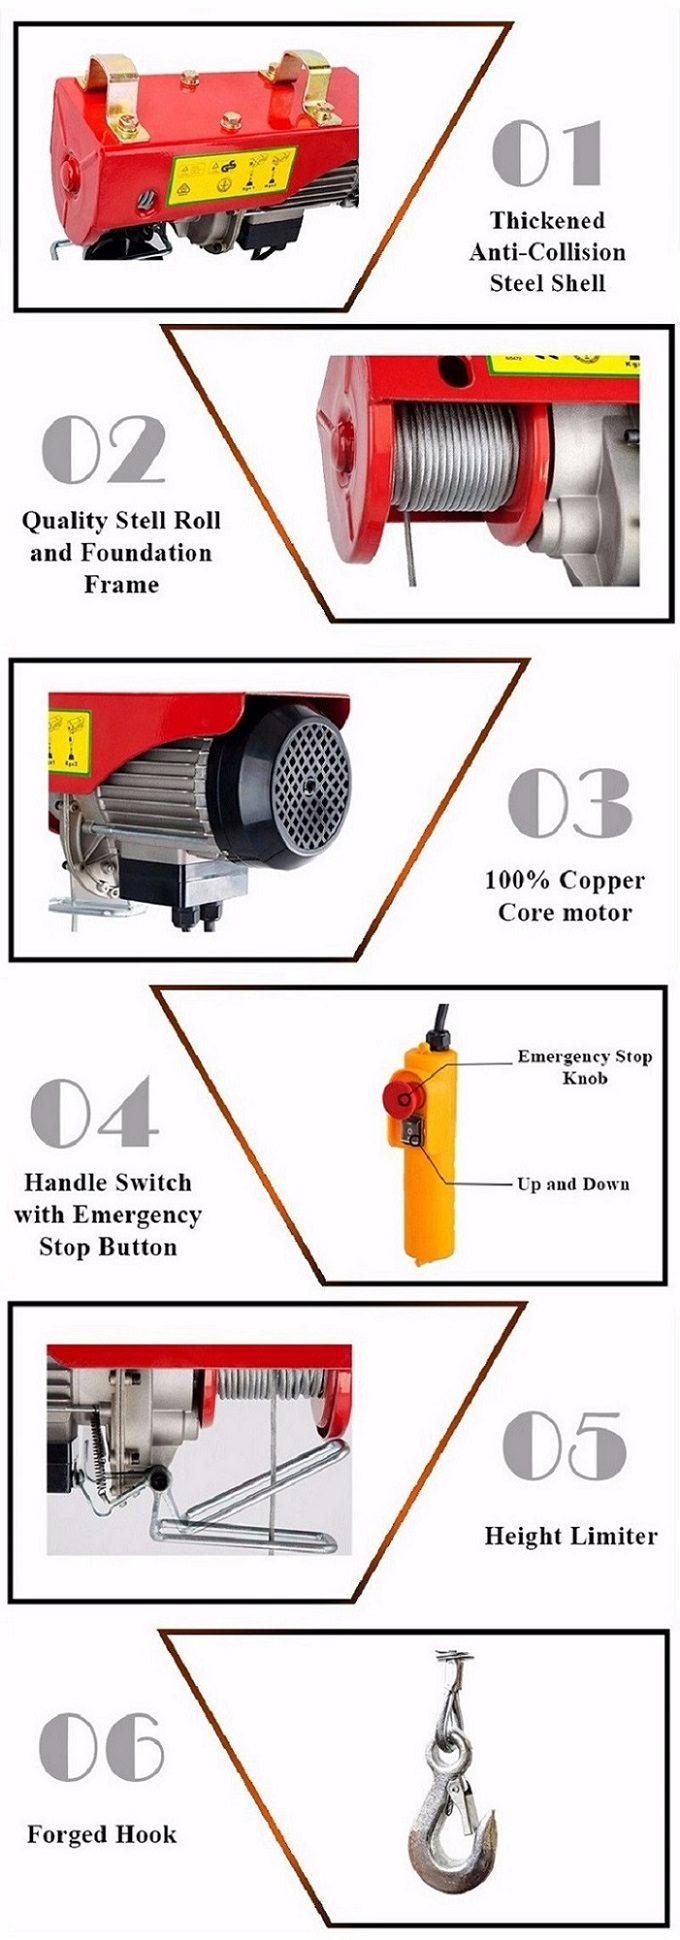 China Mini Electric Wire rope Hoists manufacturers7.jpg